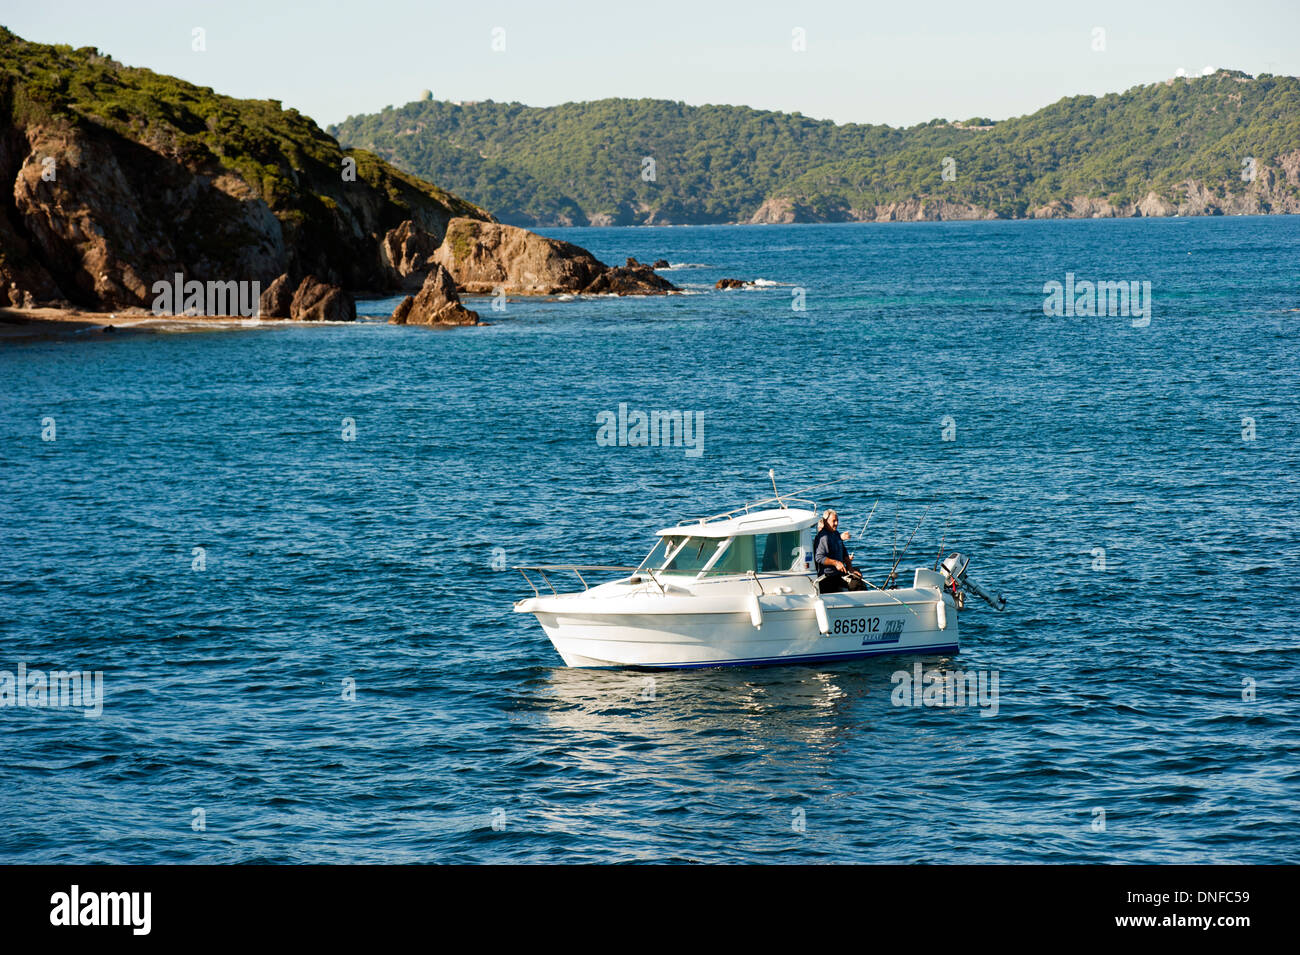 Recreational fishing in Port Cros National Park Hyeres France - Stock Image